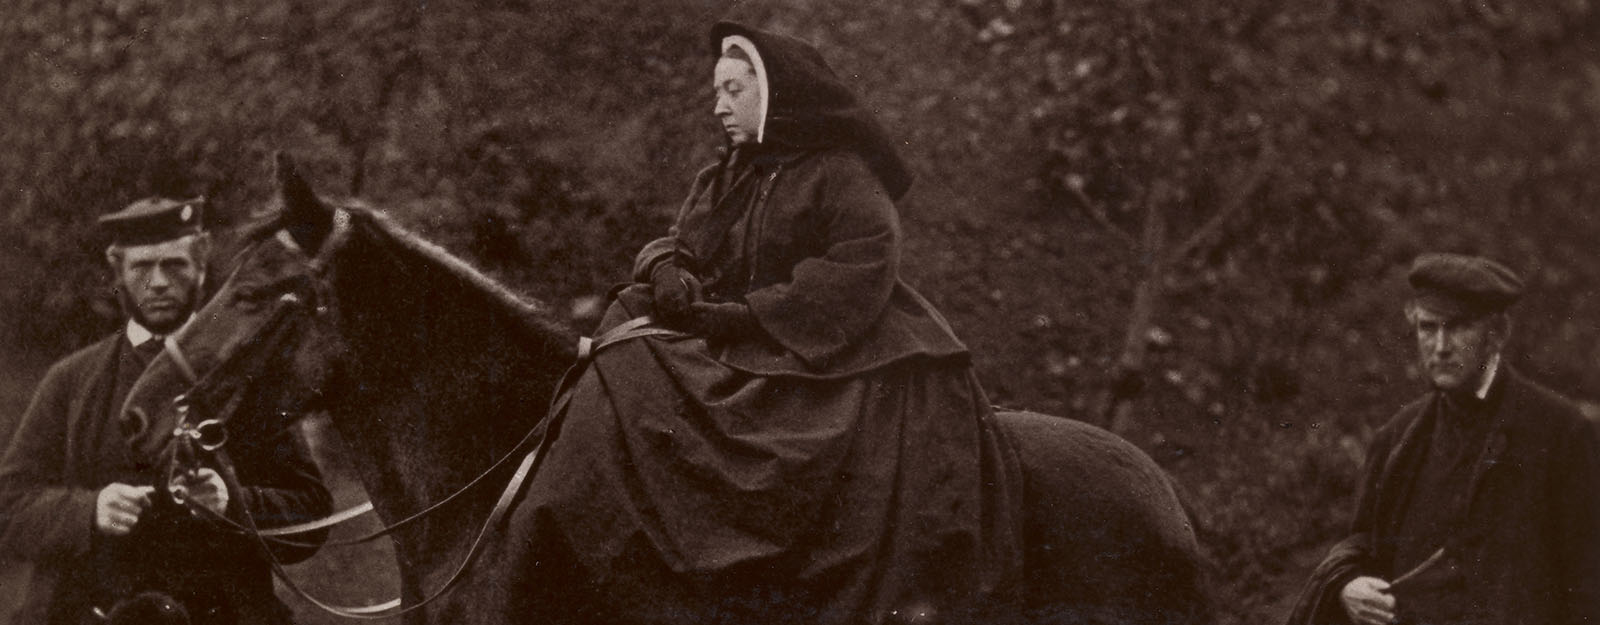 Queen Victoria on top of a horse next to her steward